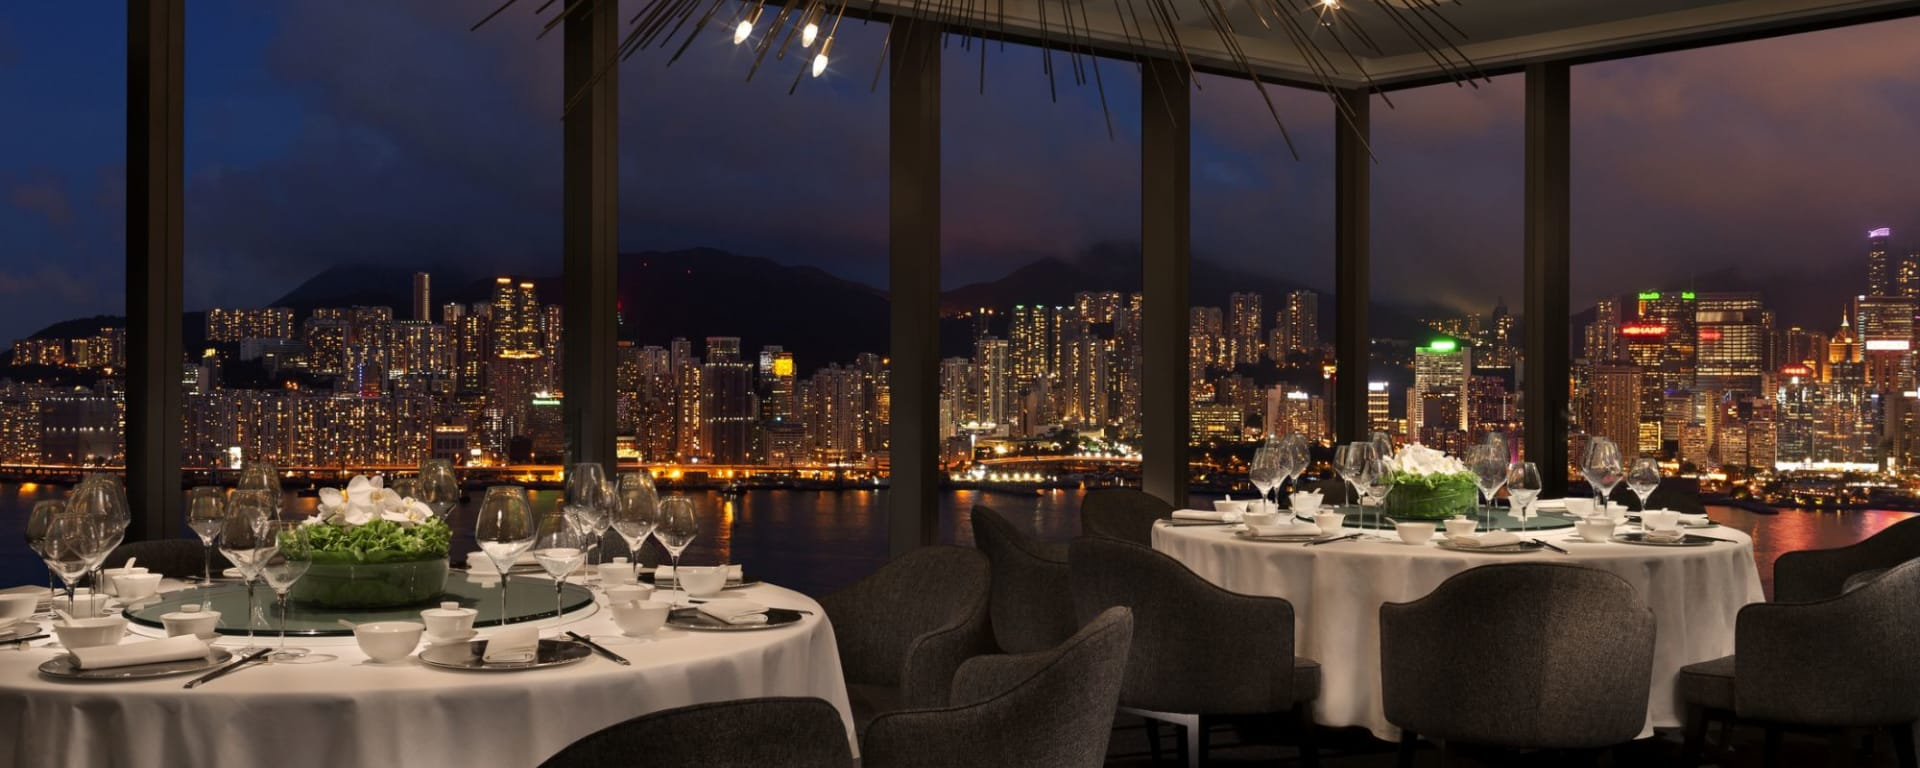 Hotel ICON in Hong Kong: Above & Beyond Private Dining Room